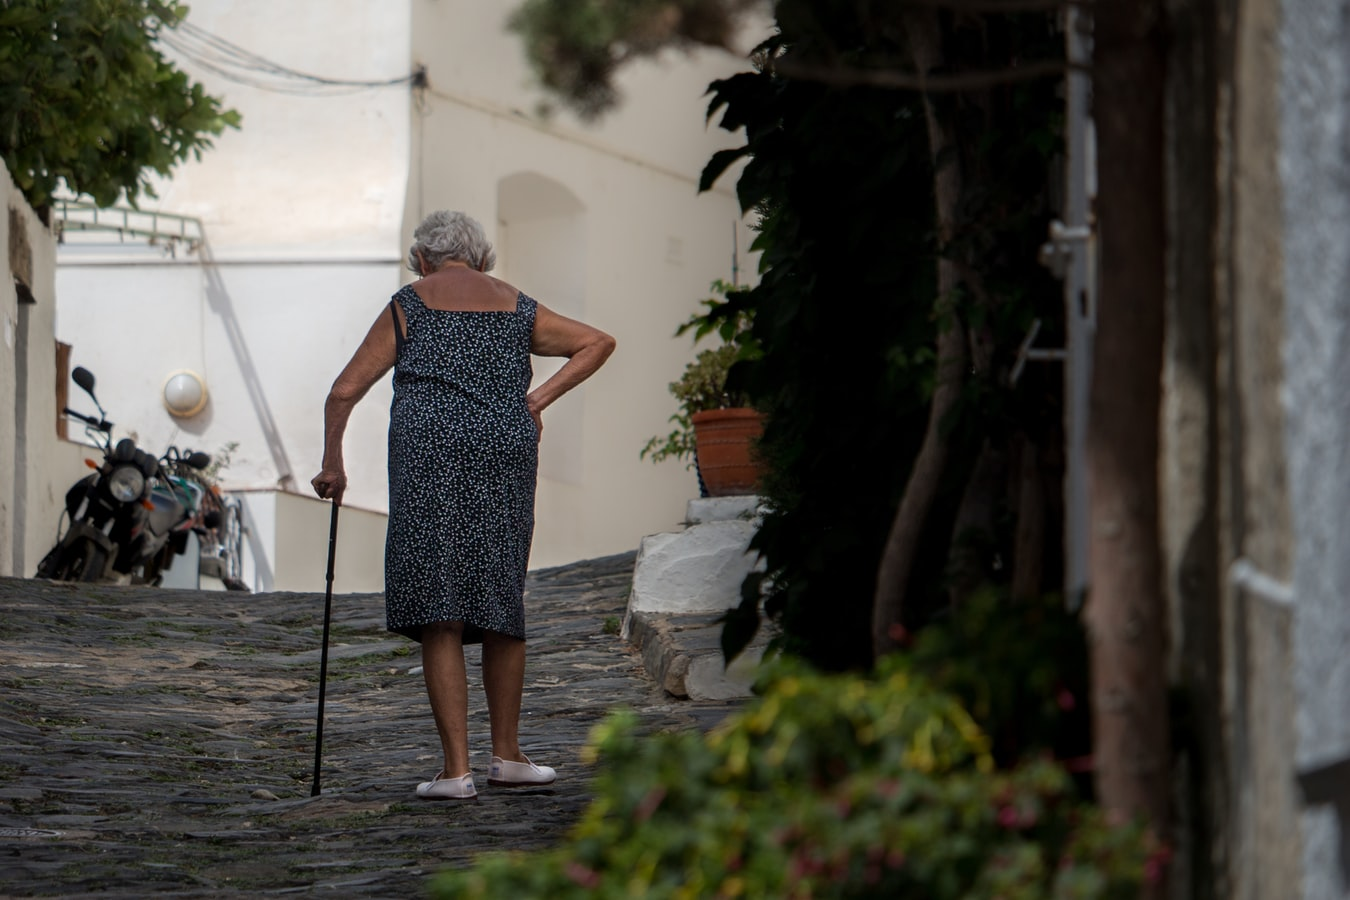 A woman walking up the street with a cane. There are many ways one can help with preventing senior falls